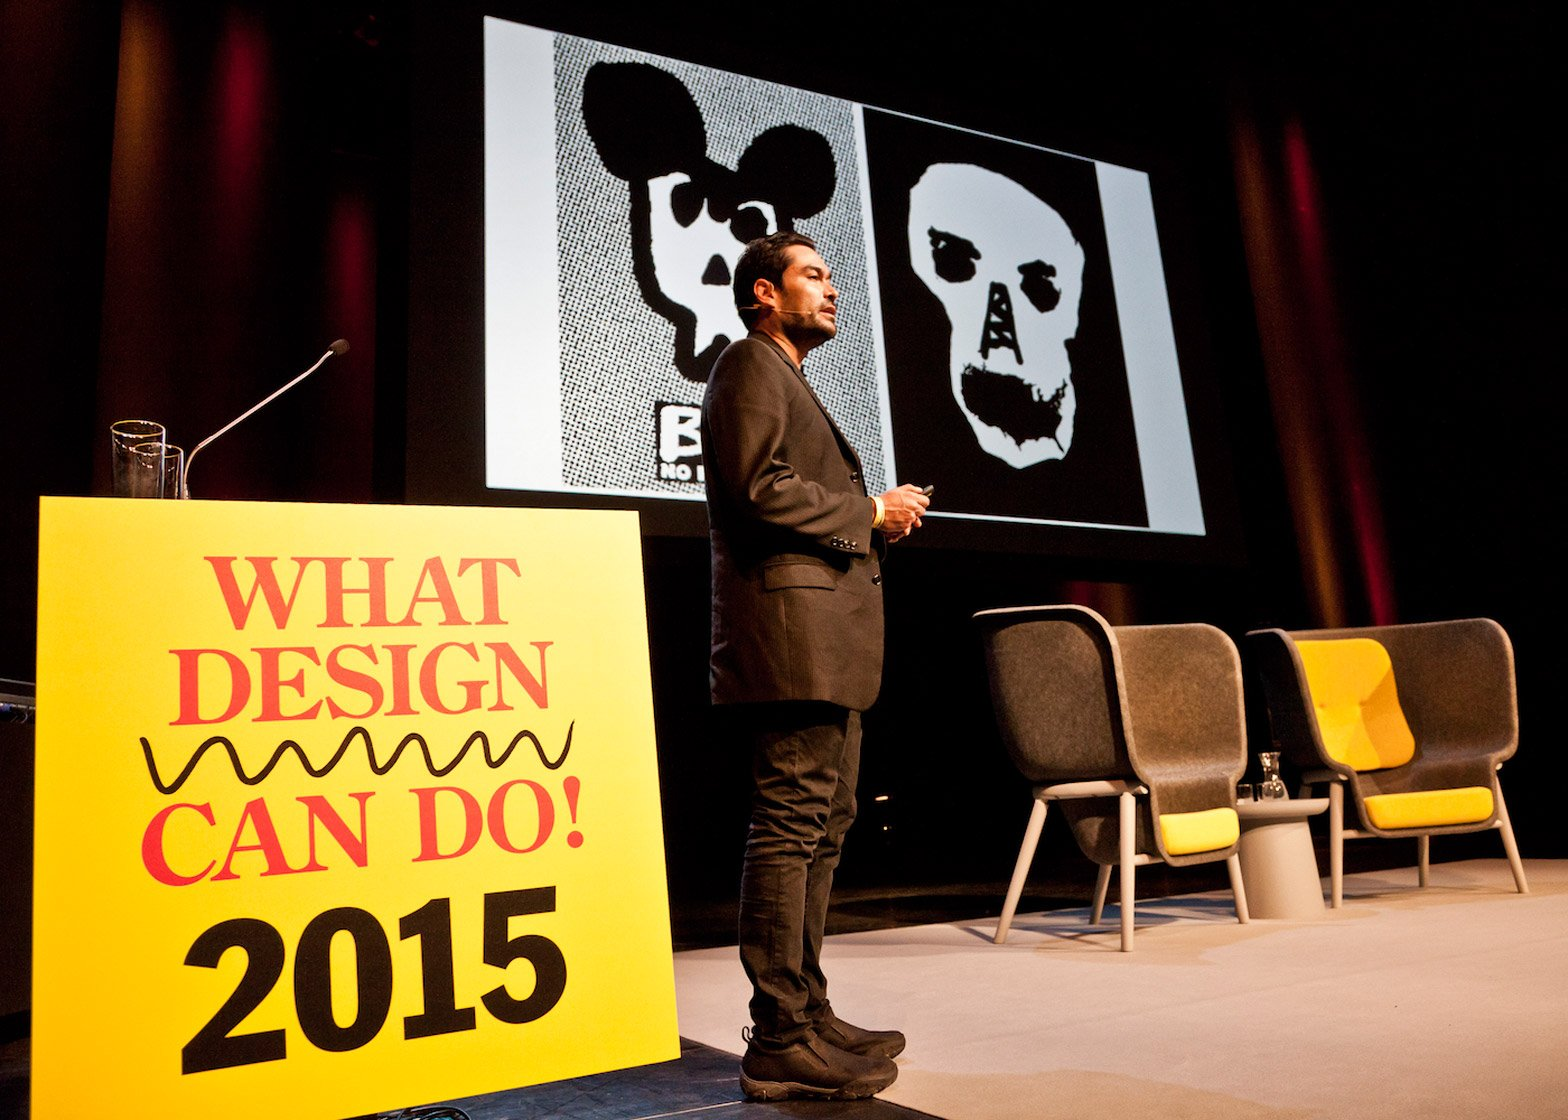 What Design Can Do competition 2016